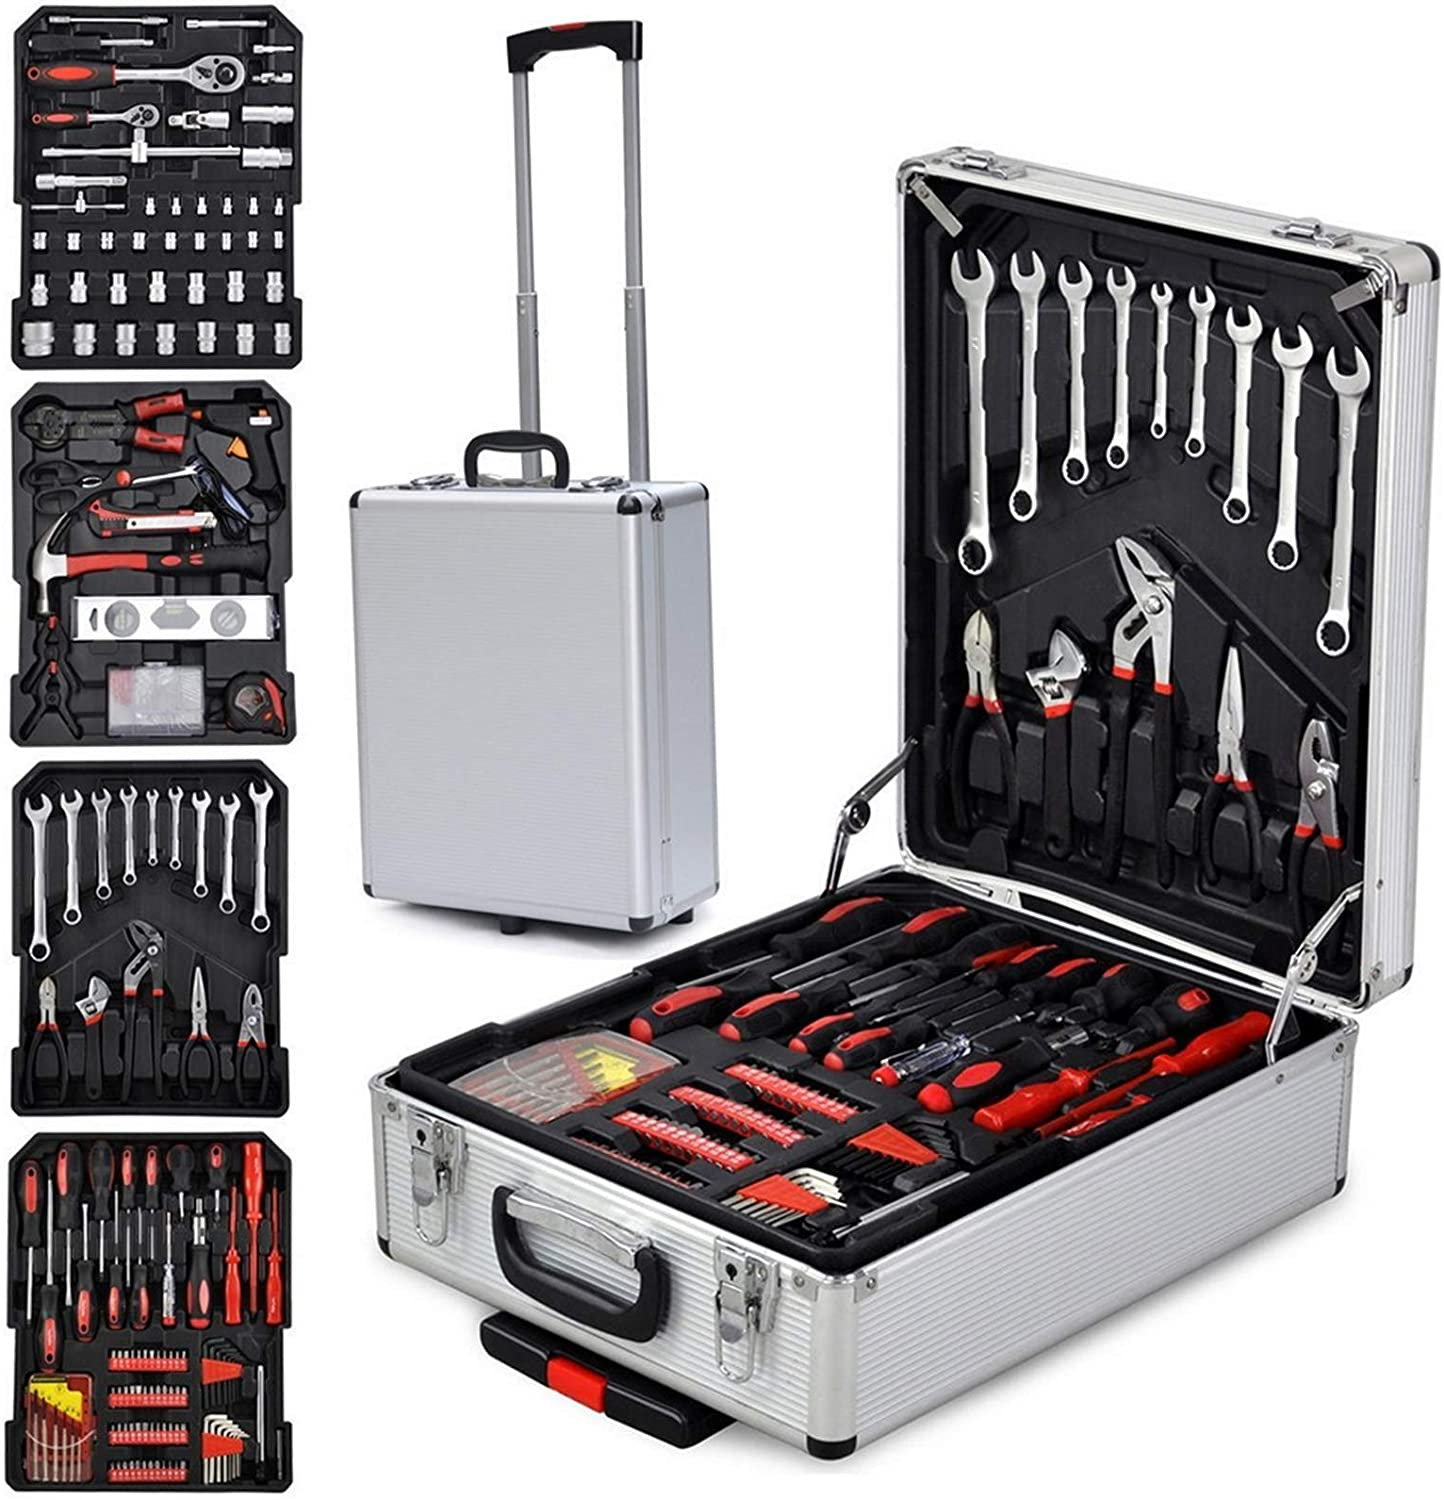 799Pieces Household Tool kit Auto Repair Tool Set Aluminum Trolley Case Tool Set General Hand Tool Set with Hammer, Plier, Screwdriver Set, Socket Kit, Aluminum Trolley Case Tool Set(Silver)